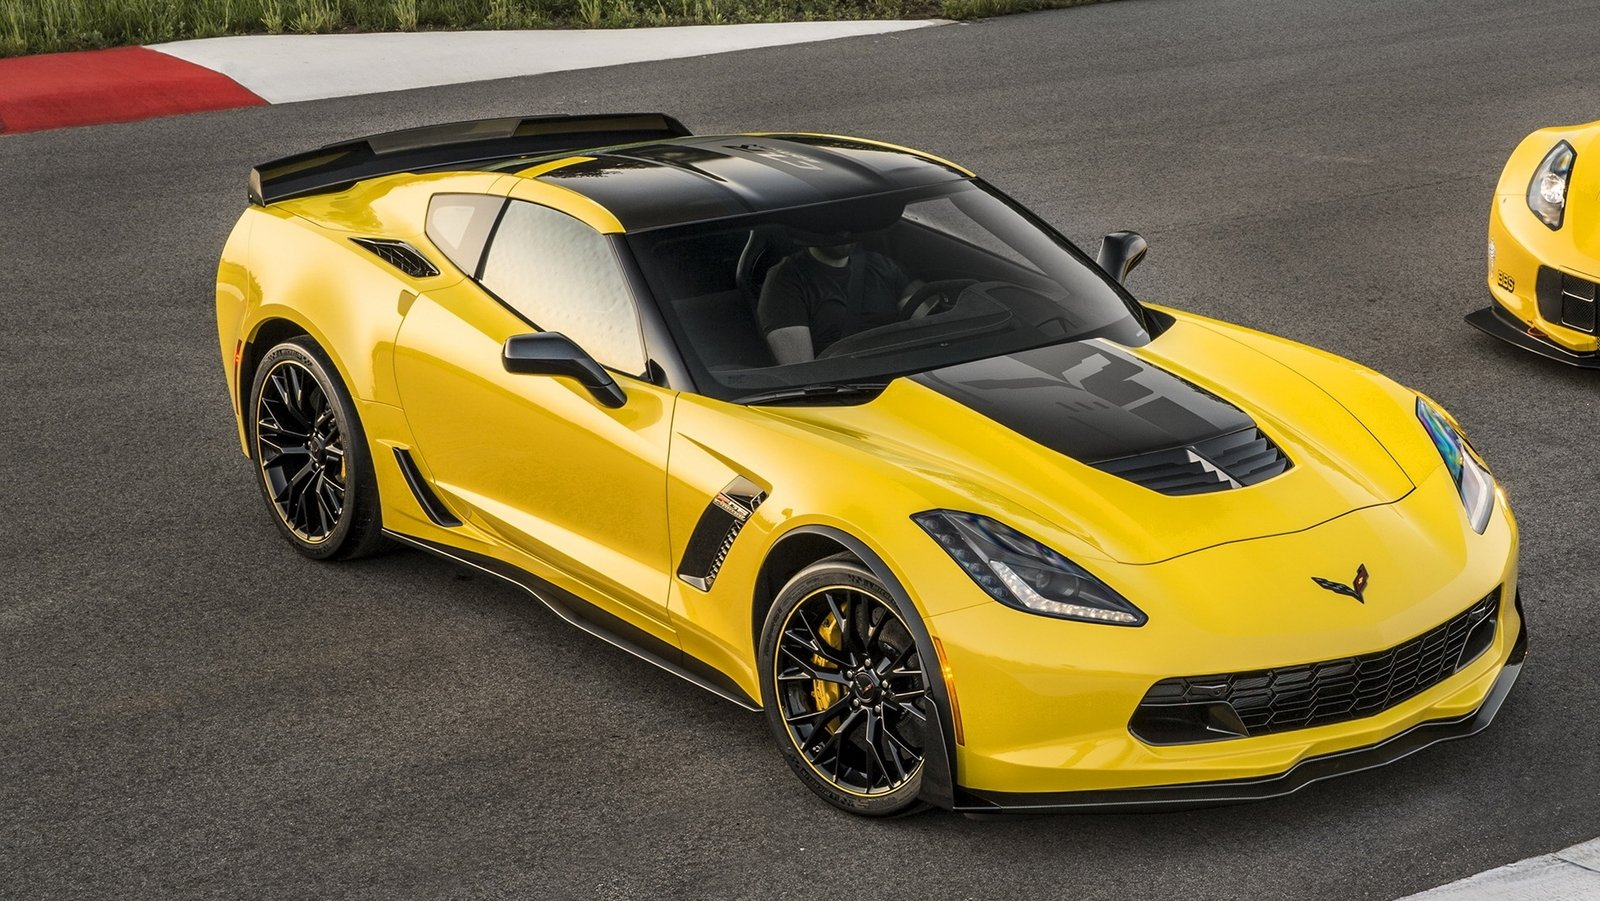 pictures of 2016 corvette zo6 2017 2018 best cars reviews. Black Bedroom Furniture Sets. Home Design Ideas